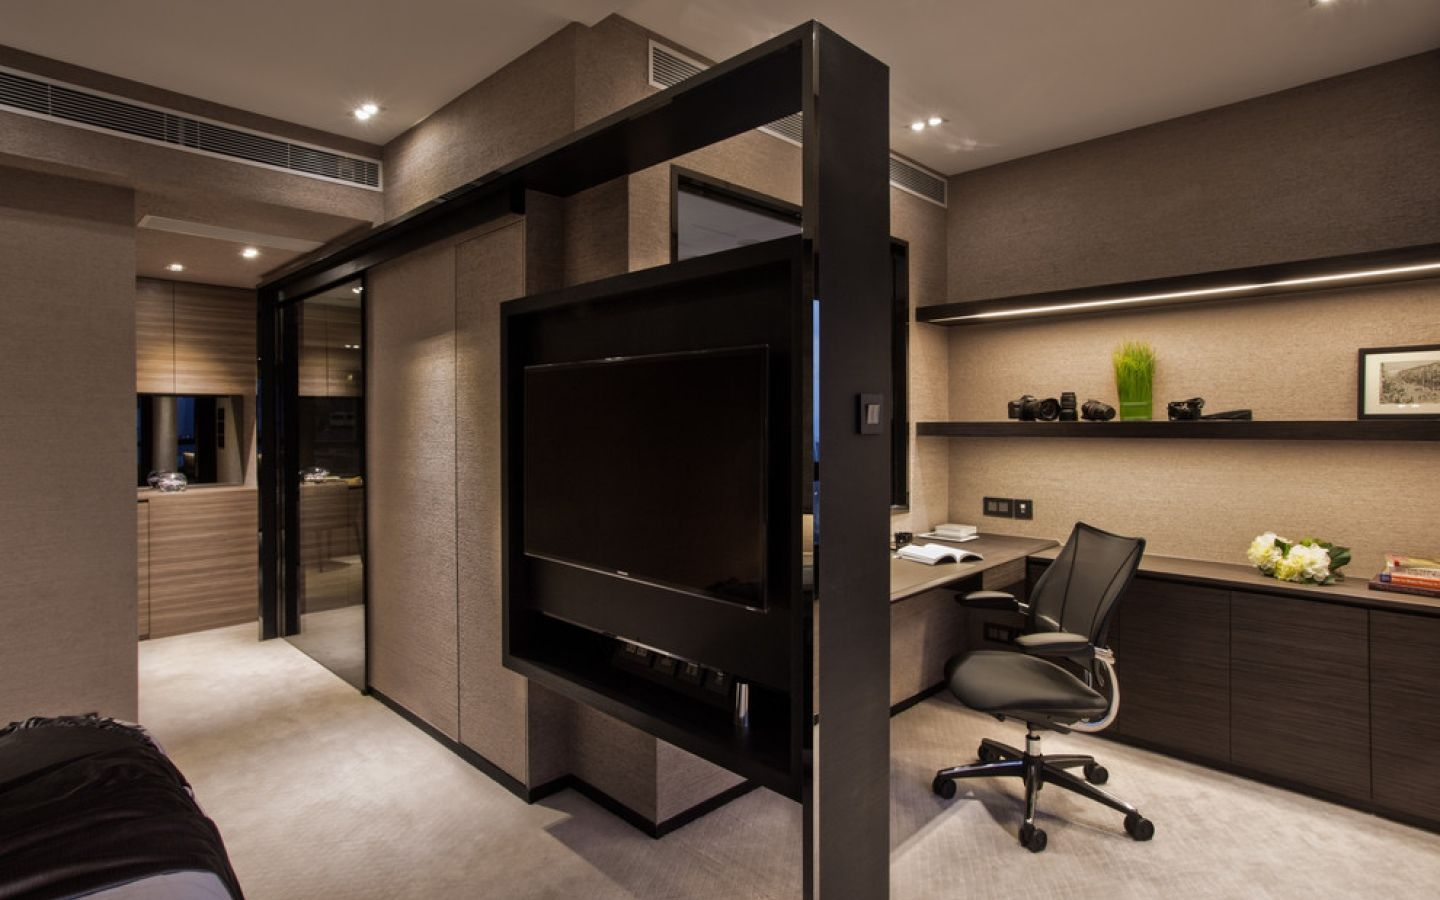 Exceptional Sliding And Revolving Partitions. Functional Element Of The Interior